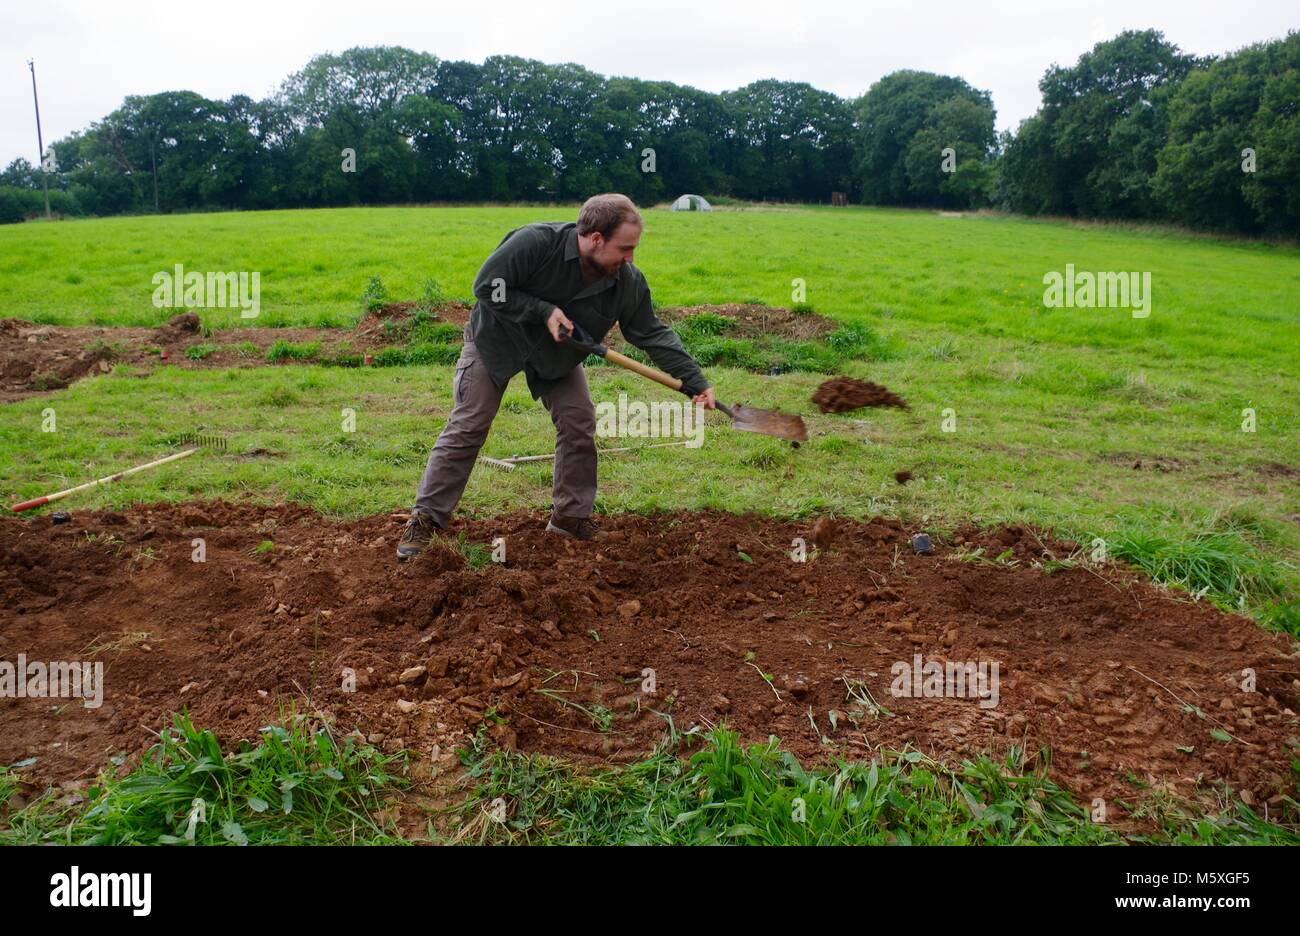 Young Handsome Man Manually Digging a Grassy Field in Mid Devon to Build a Poly Tunnel. Lydcott Nursery, Morchard Stock Photo